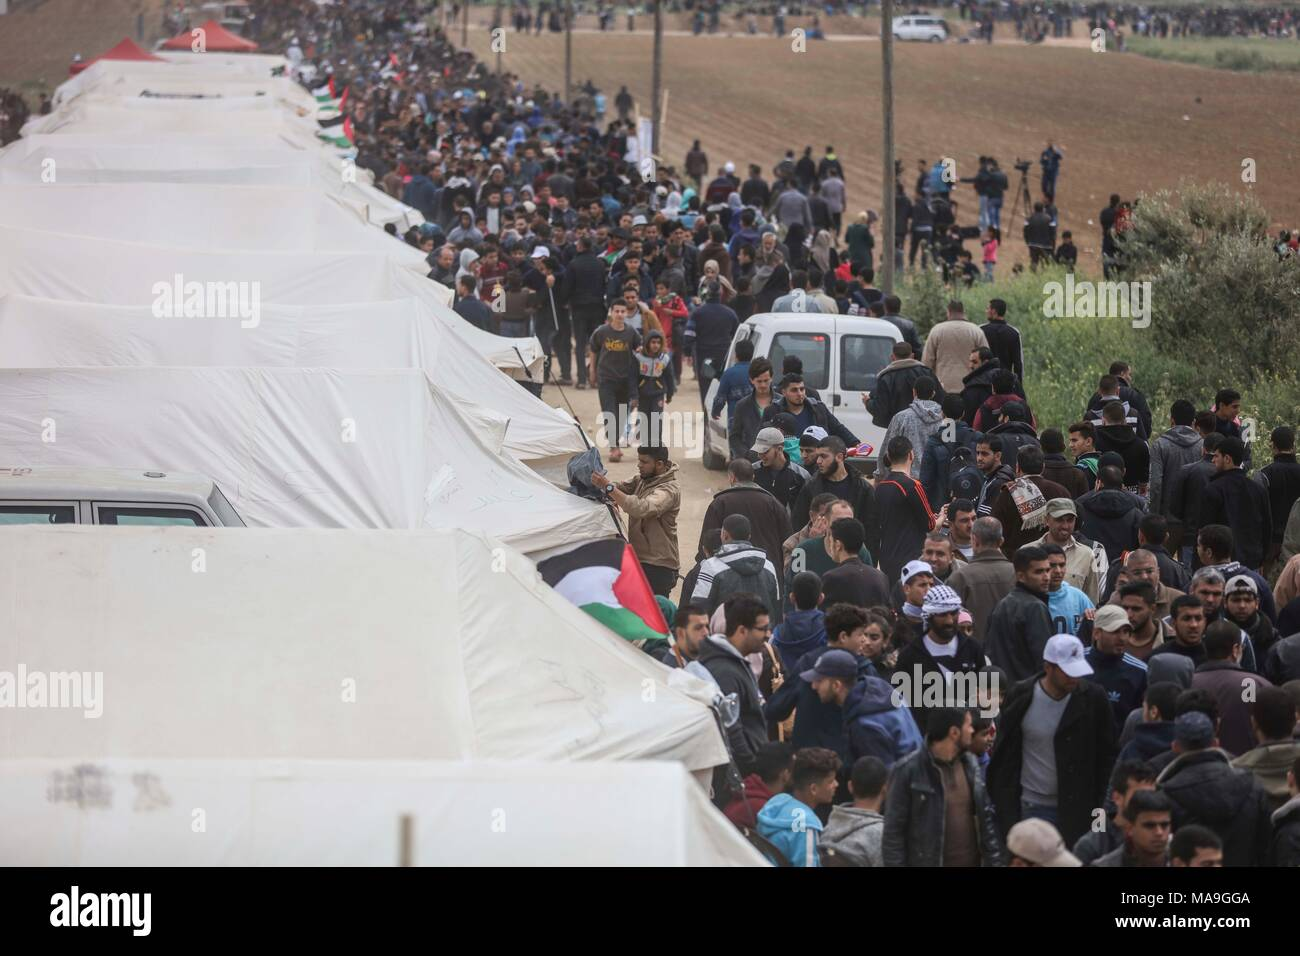 (180331) -- GAZA, March 31, 2018 (Xinhua) -- Palestinians take part in a protest along the Israel border with Gaza, demanding the right to return to their homeland, on the 42nd Anniversary of the Palestinian Land Day, in Gaza City, on March 30, 2018. (Xinhua/Wissam Nassar) - Stock Image